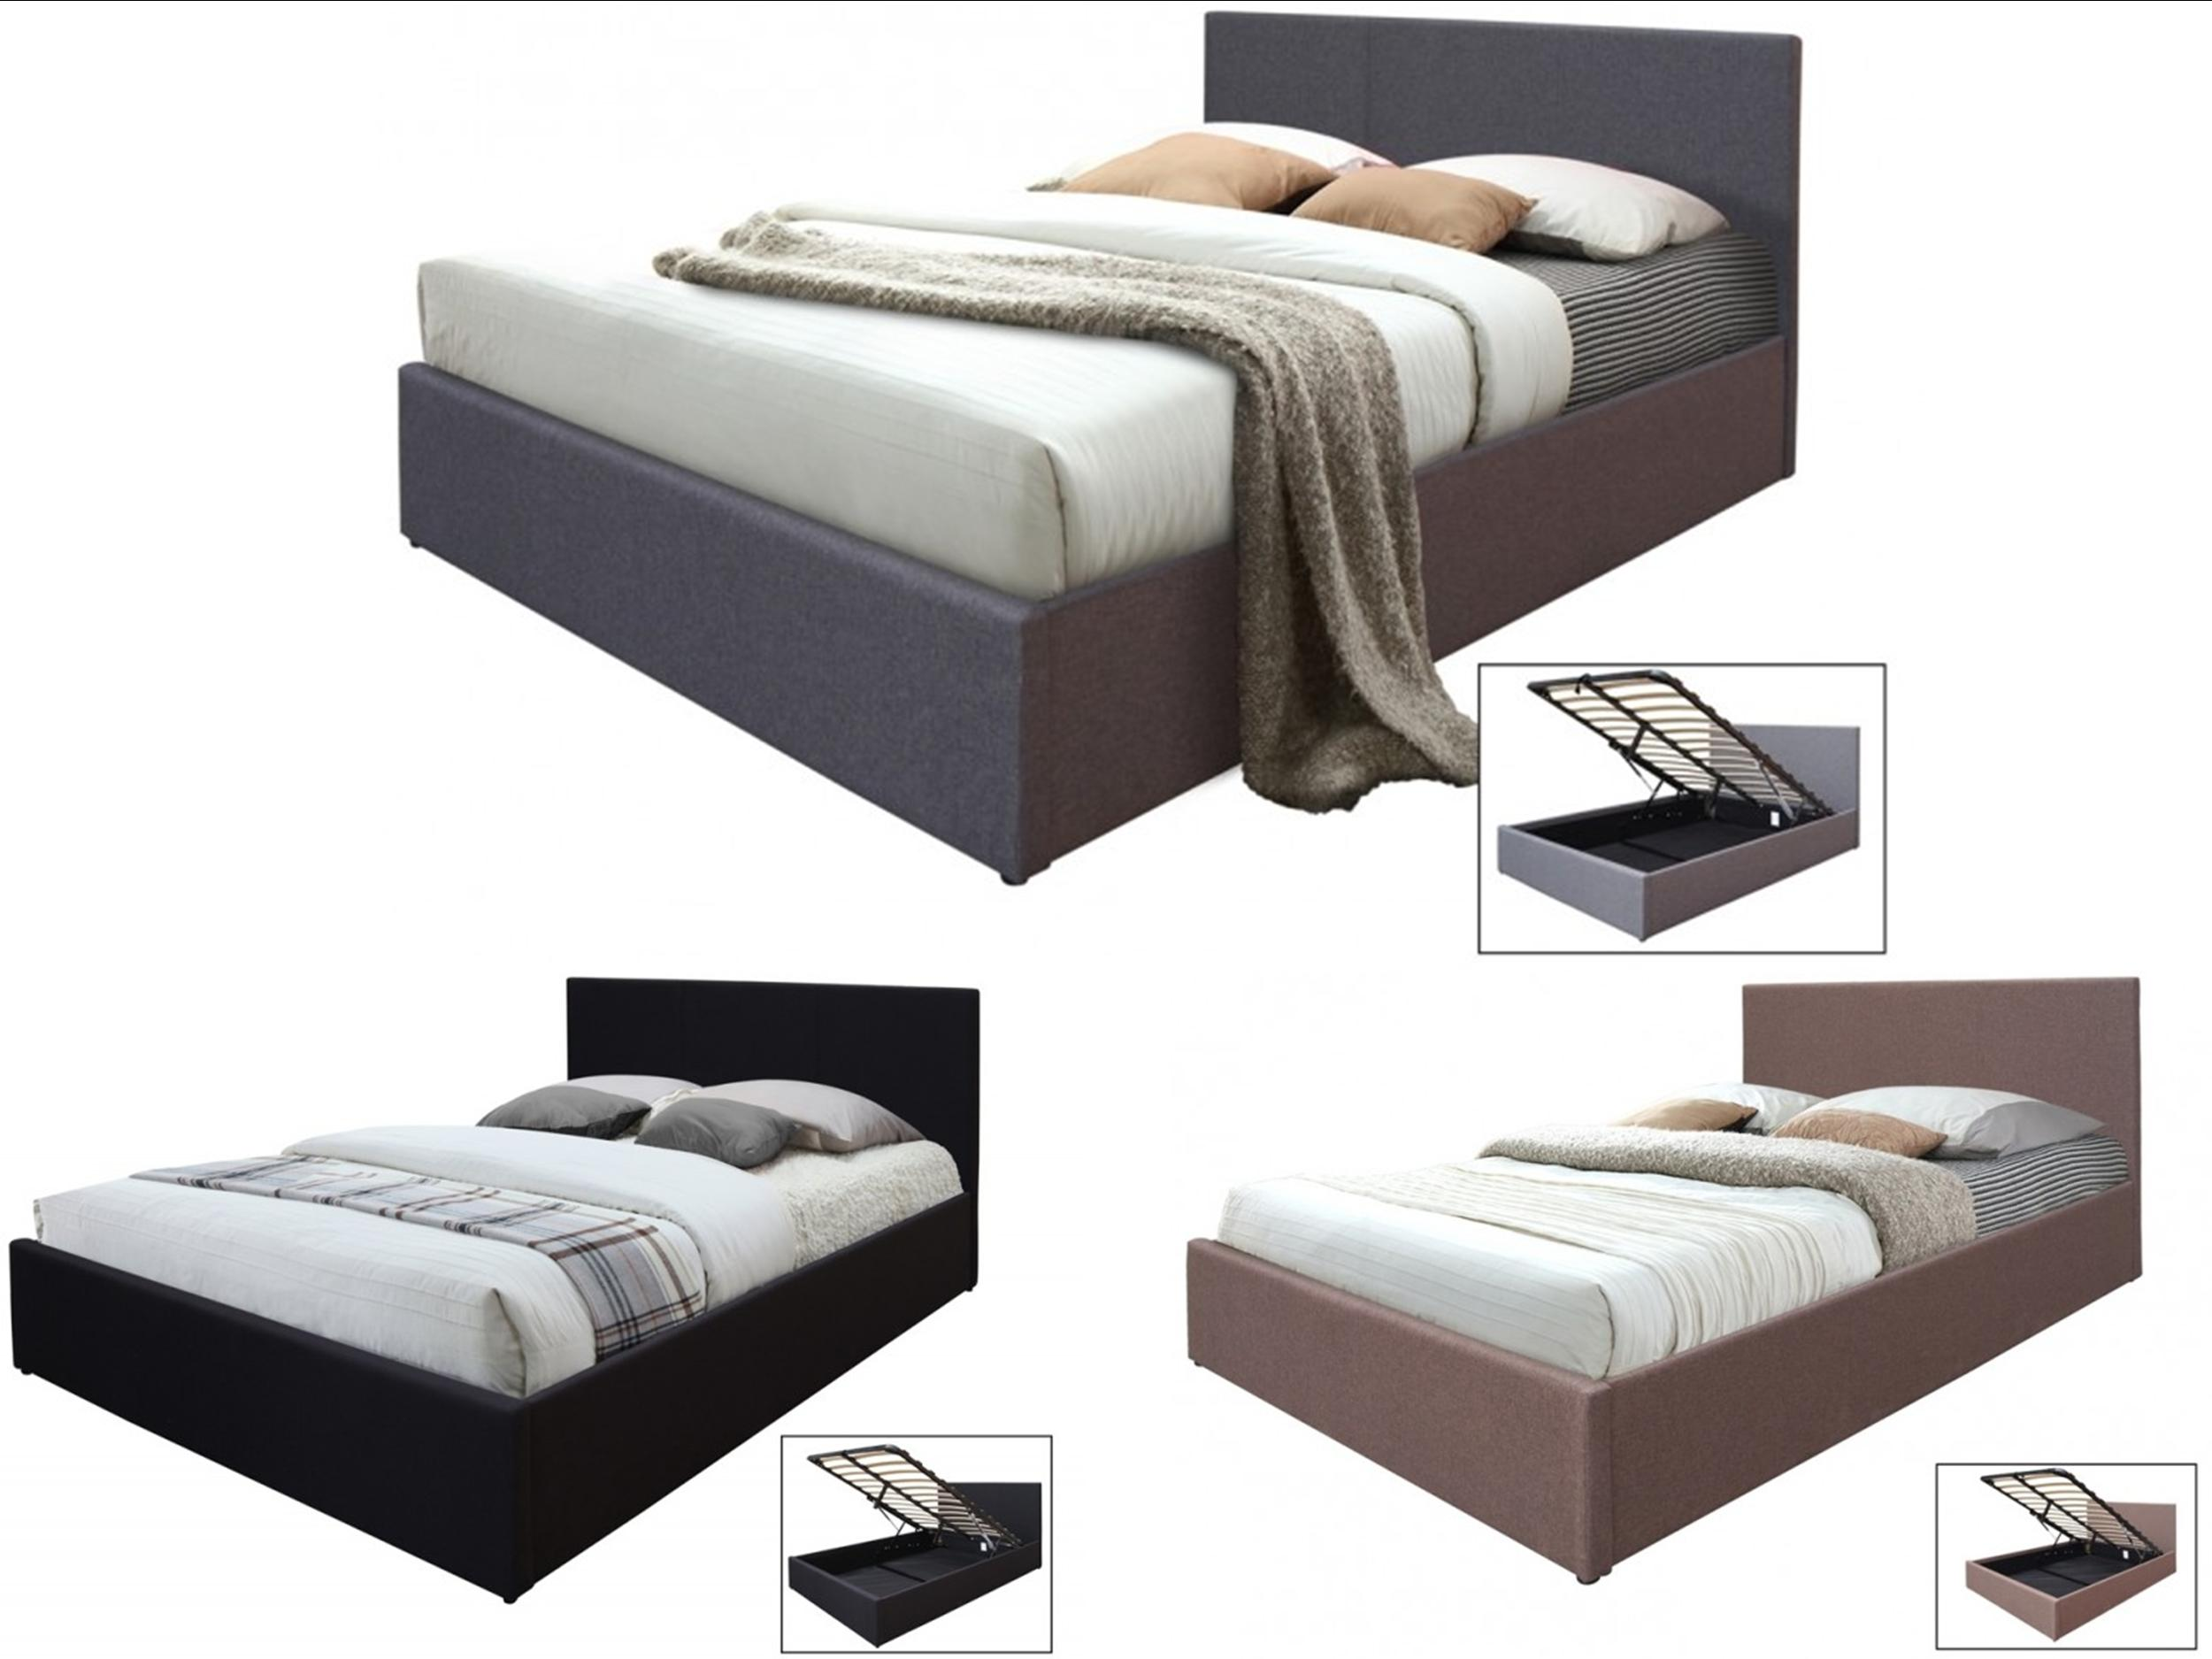 Gas Lift Ottoman Bed Details About Hopsack Fabric Ottoman Storage Bed 4ft6 Double Gas Lift Up Black Brown Grey